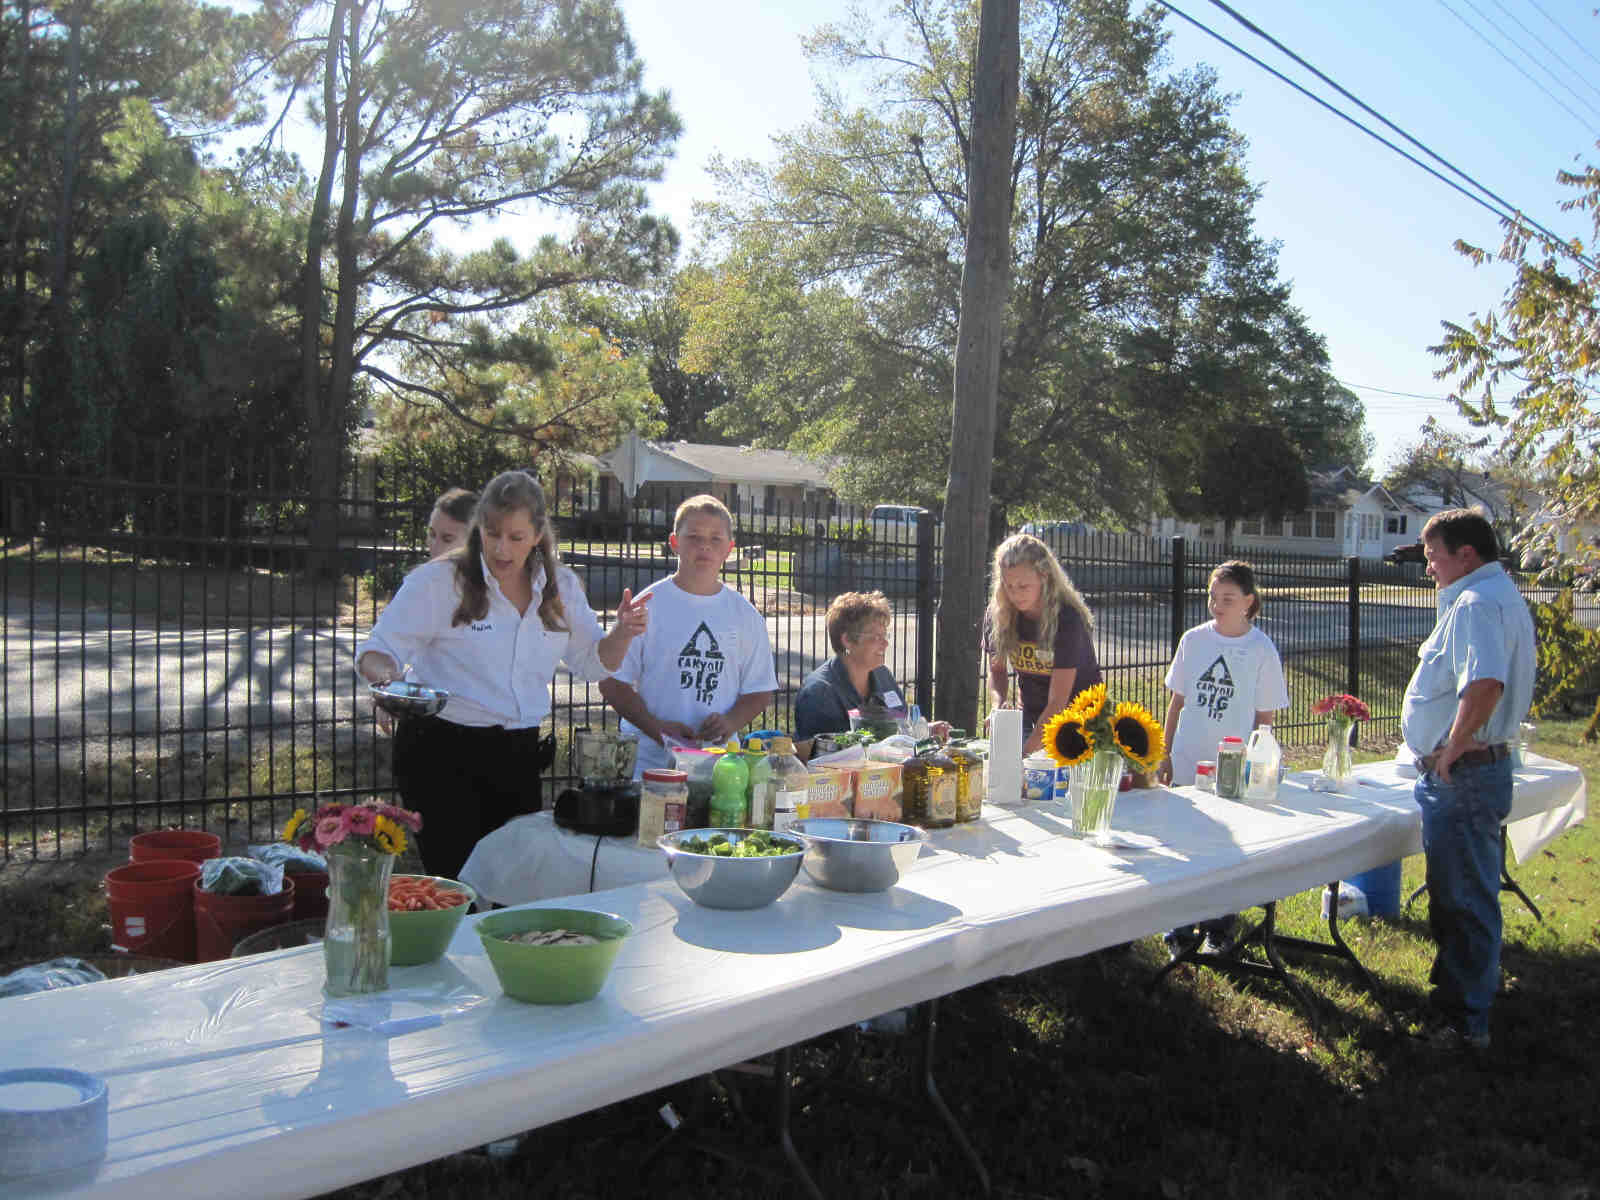 Nadine shows students how to turn their garden grown basil into great tasting pesto.